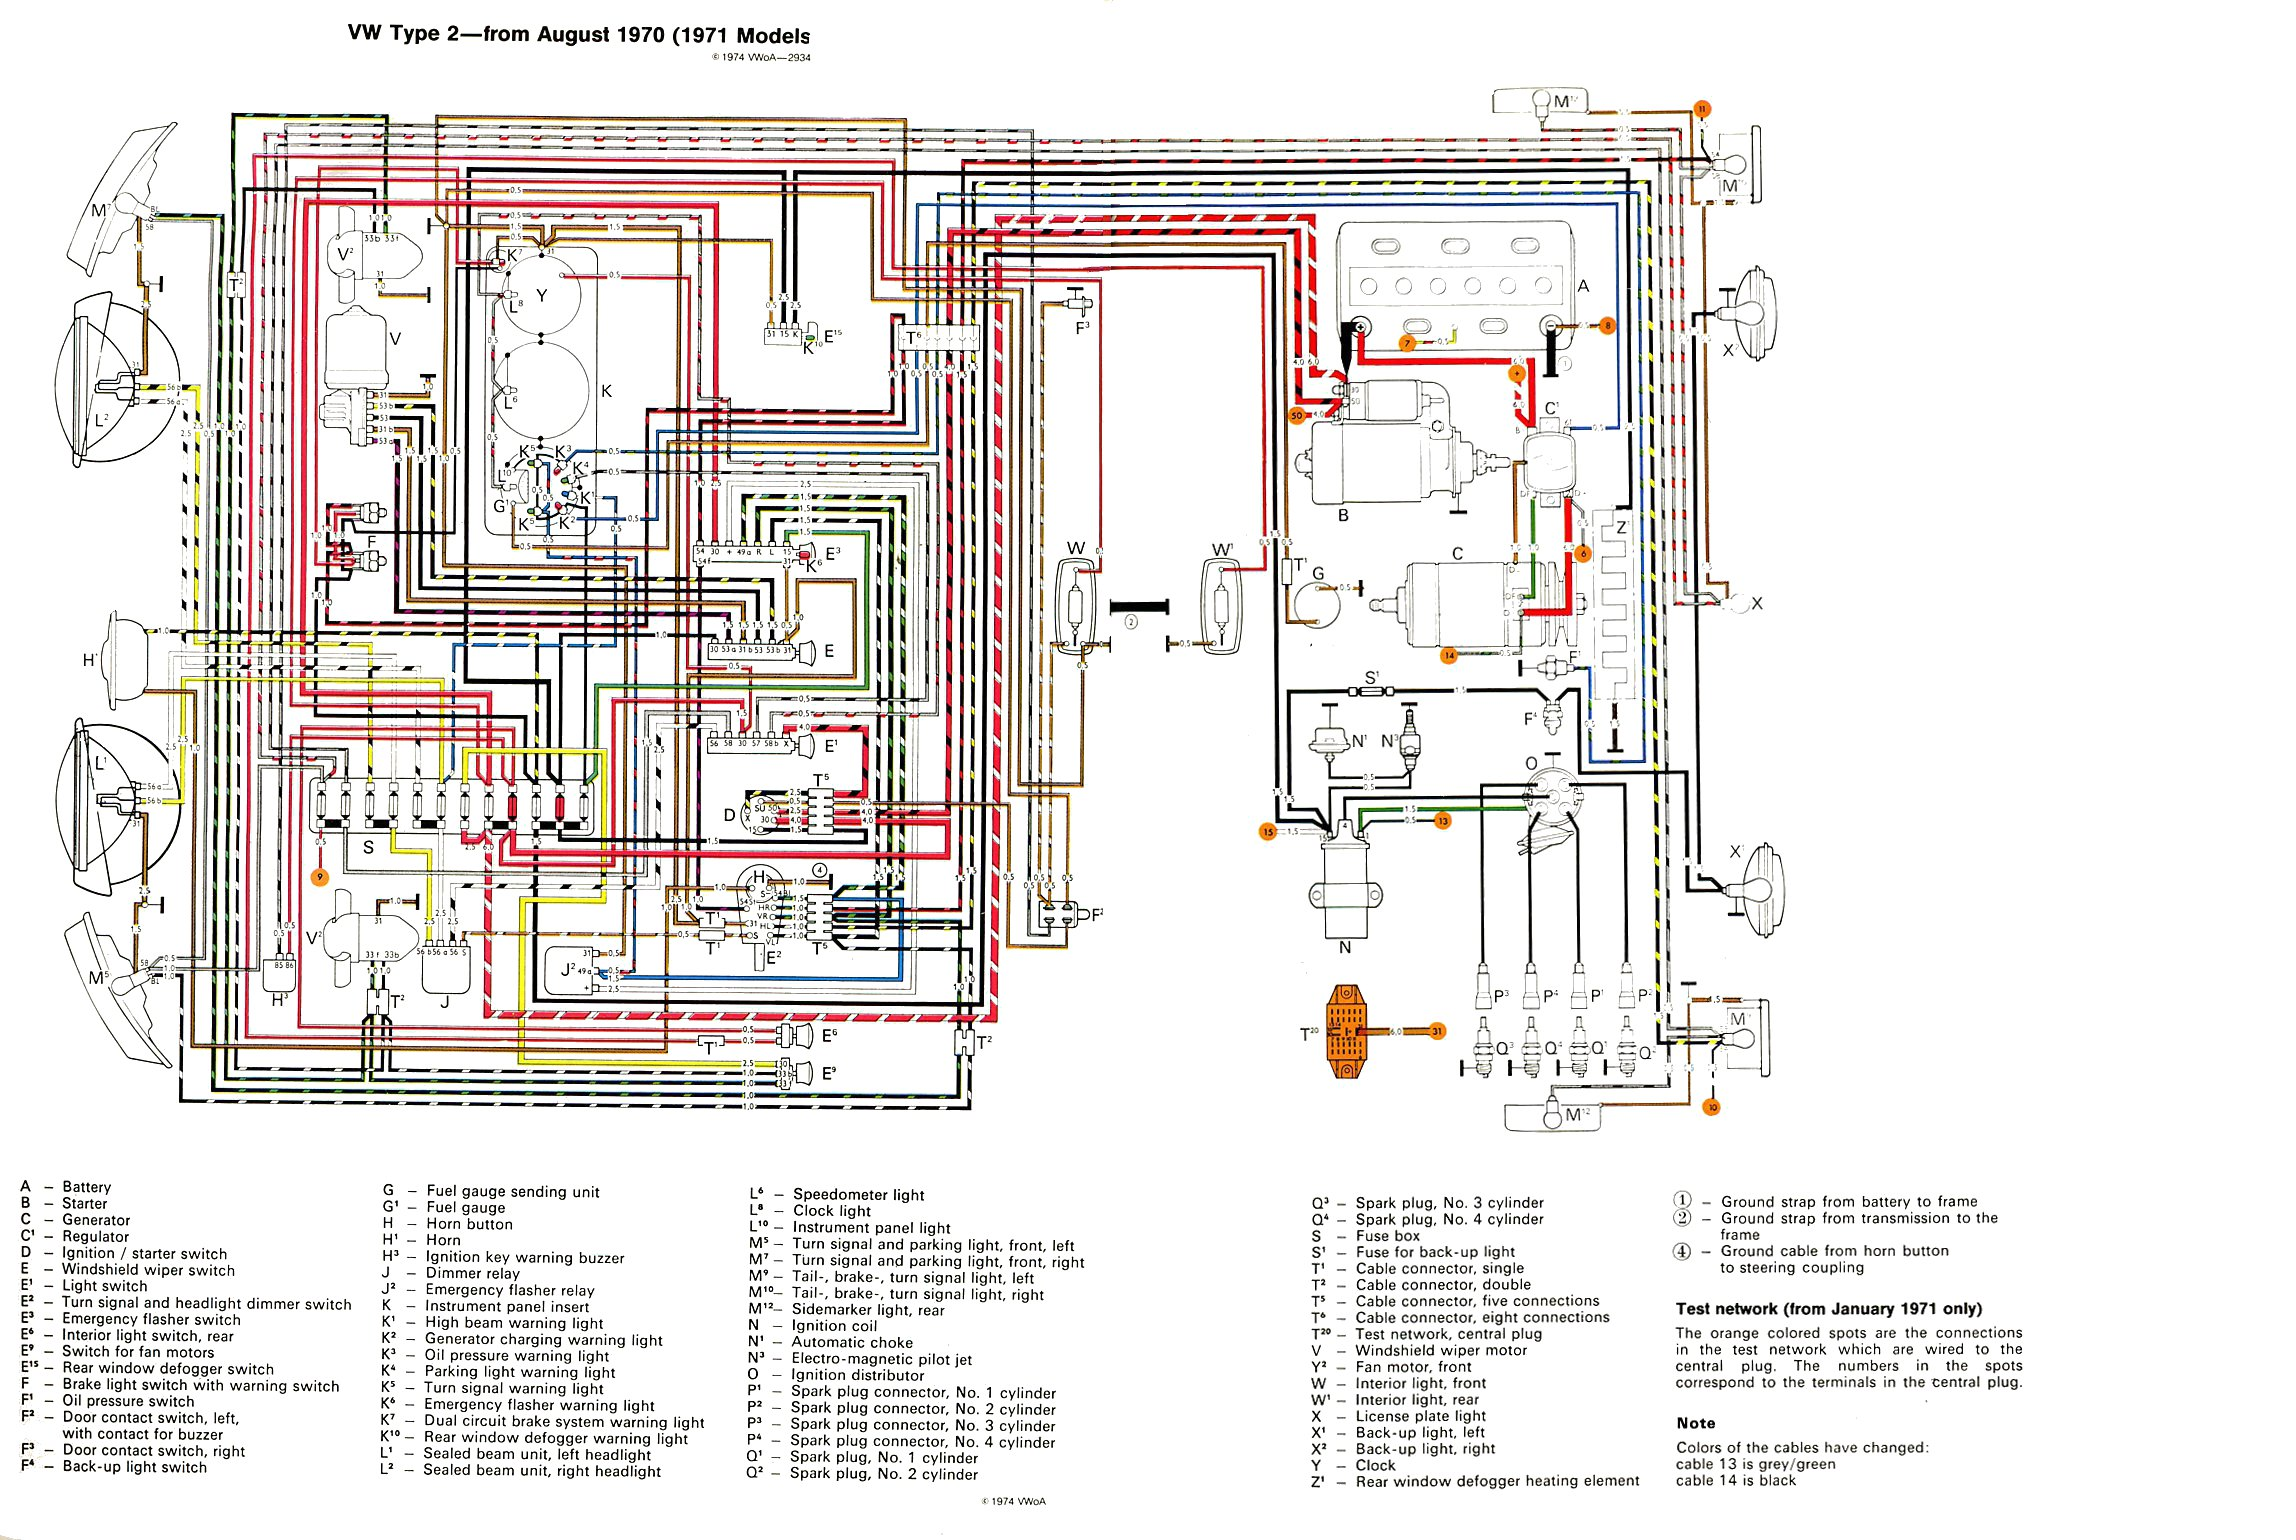 95 vw 2 0 engine diagram